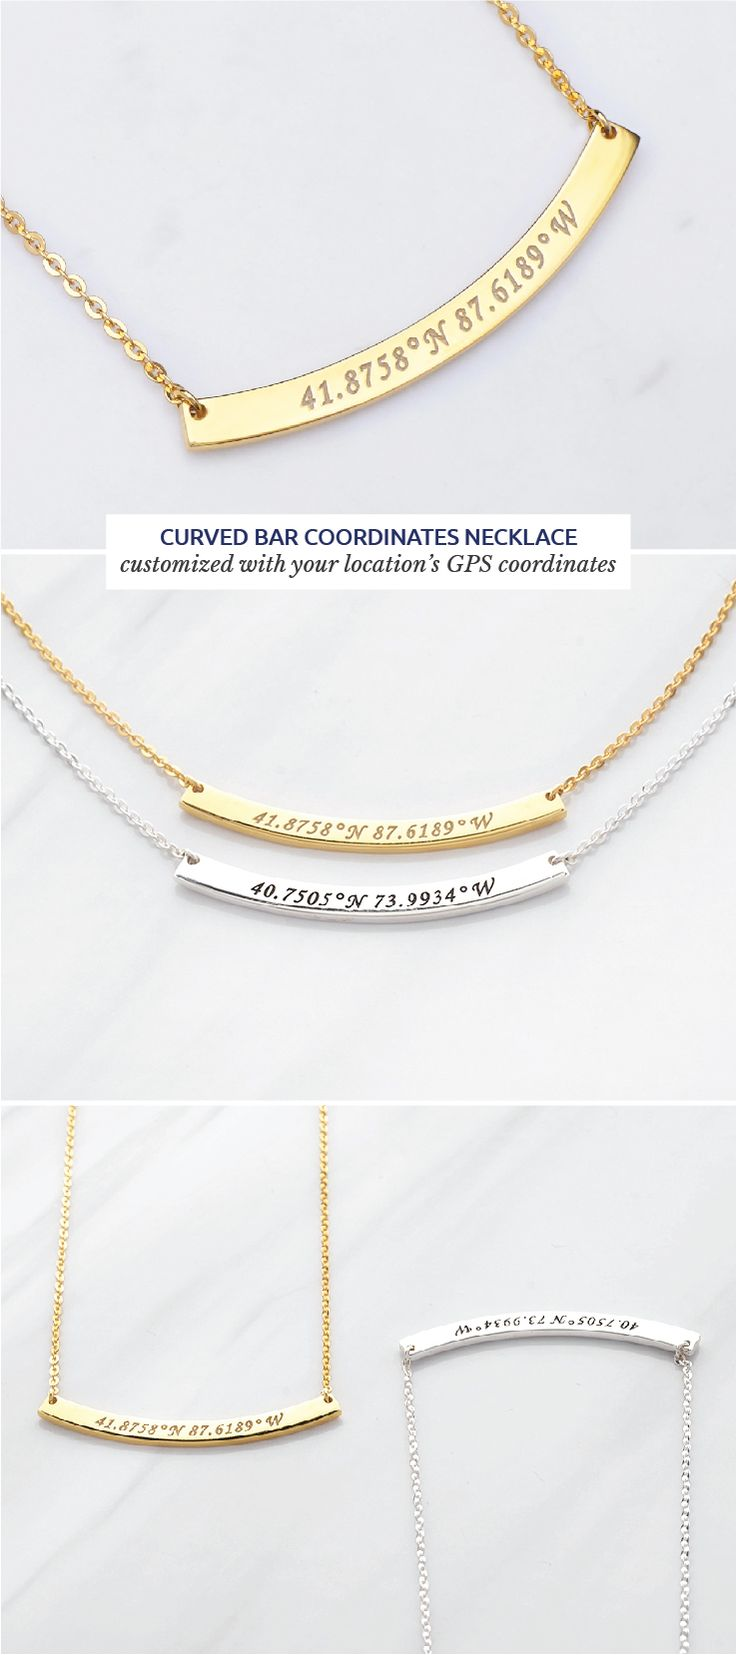 Curved bar coordinates necklace • Gold coordinates necklace • Sister necklace • Going away gifts for friends • high school graduation gifts